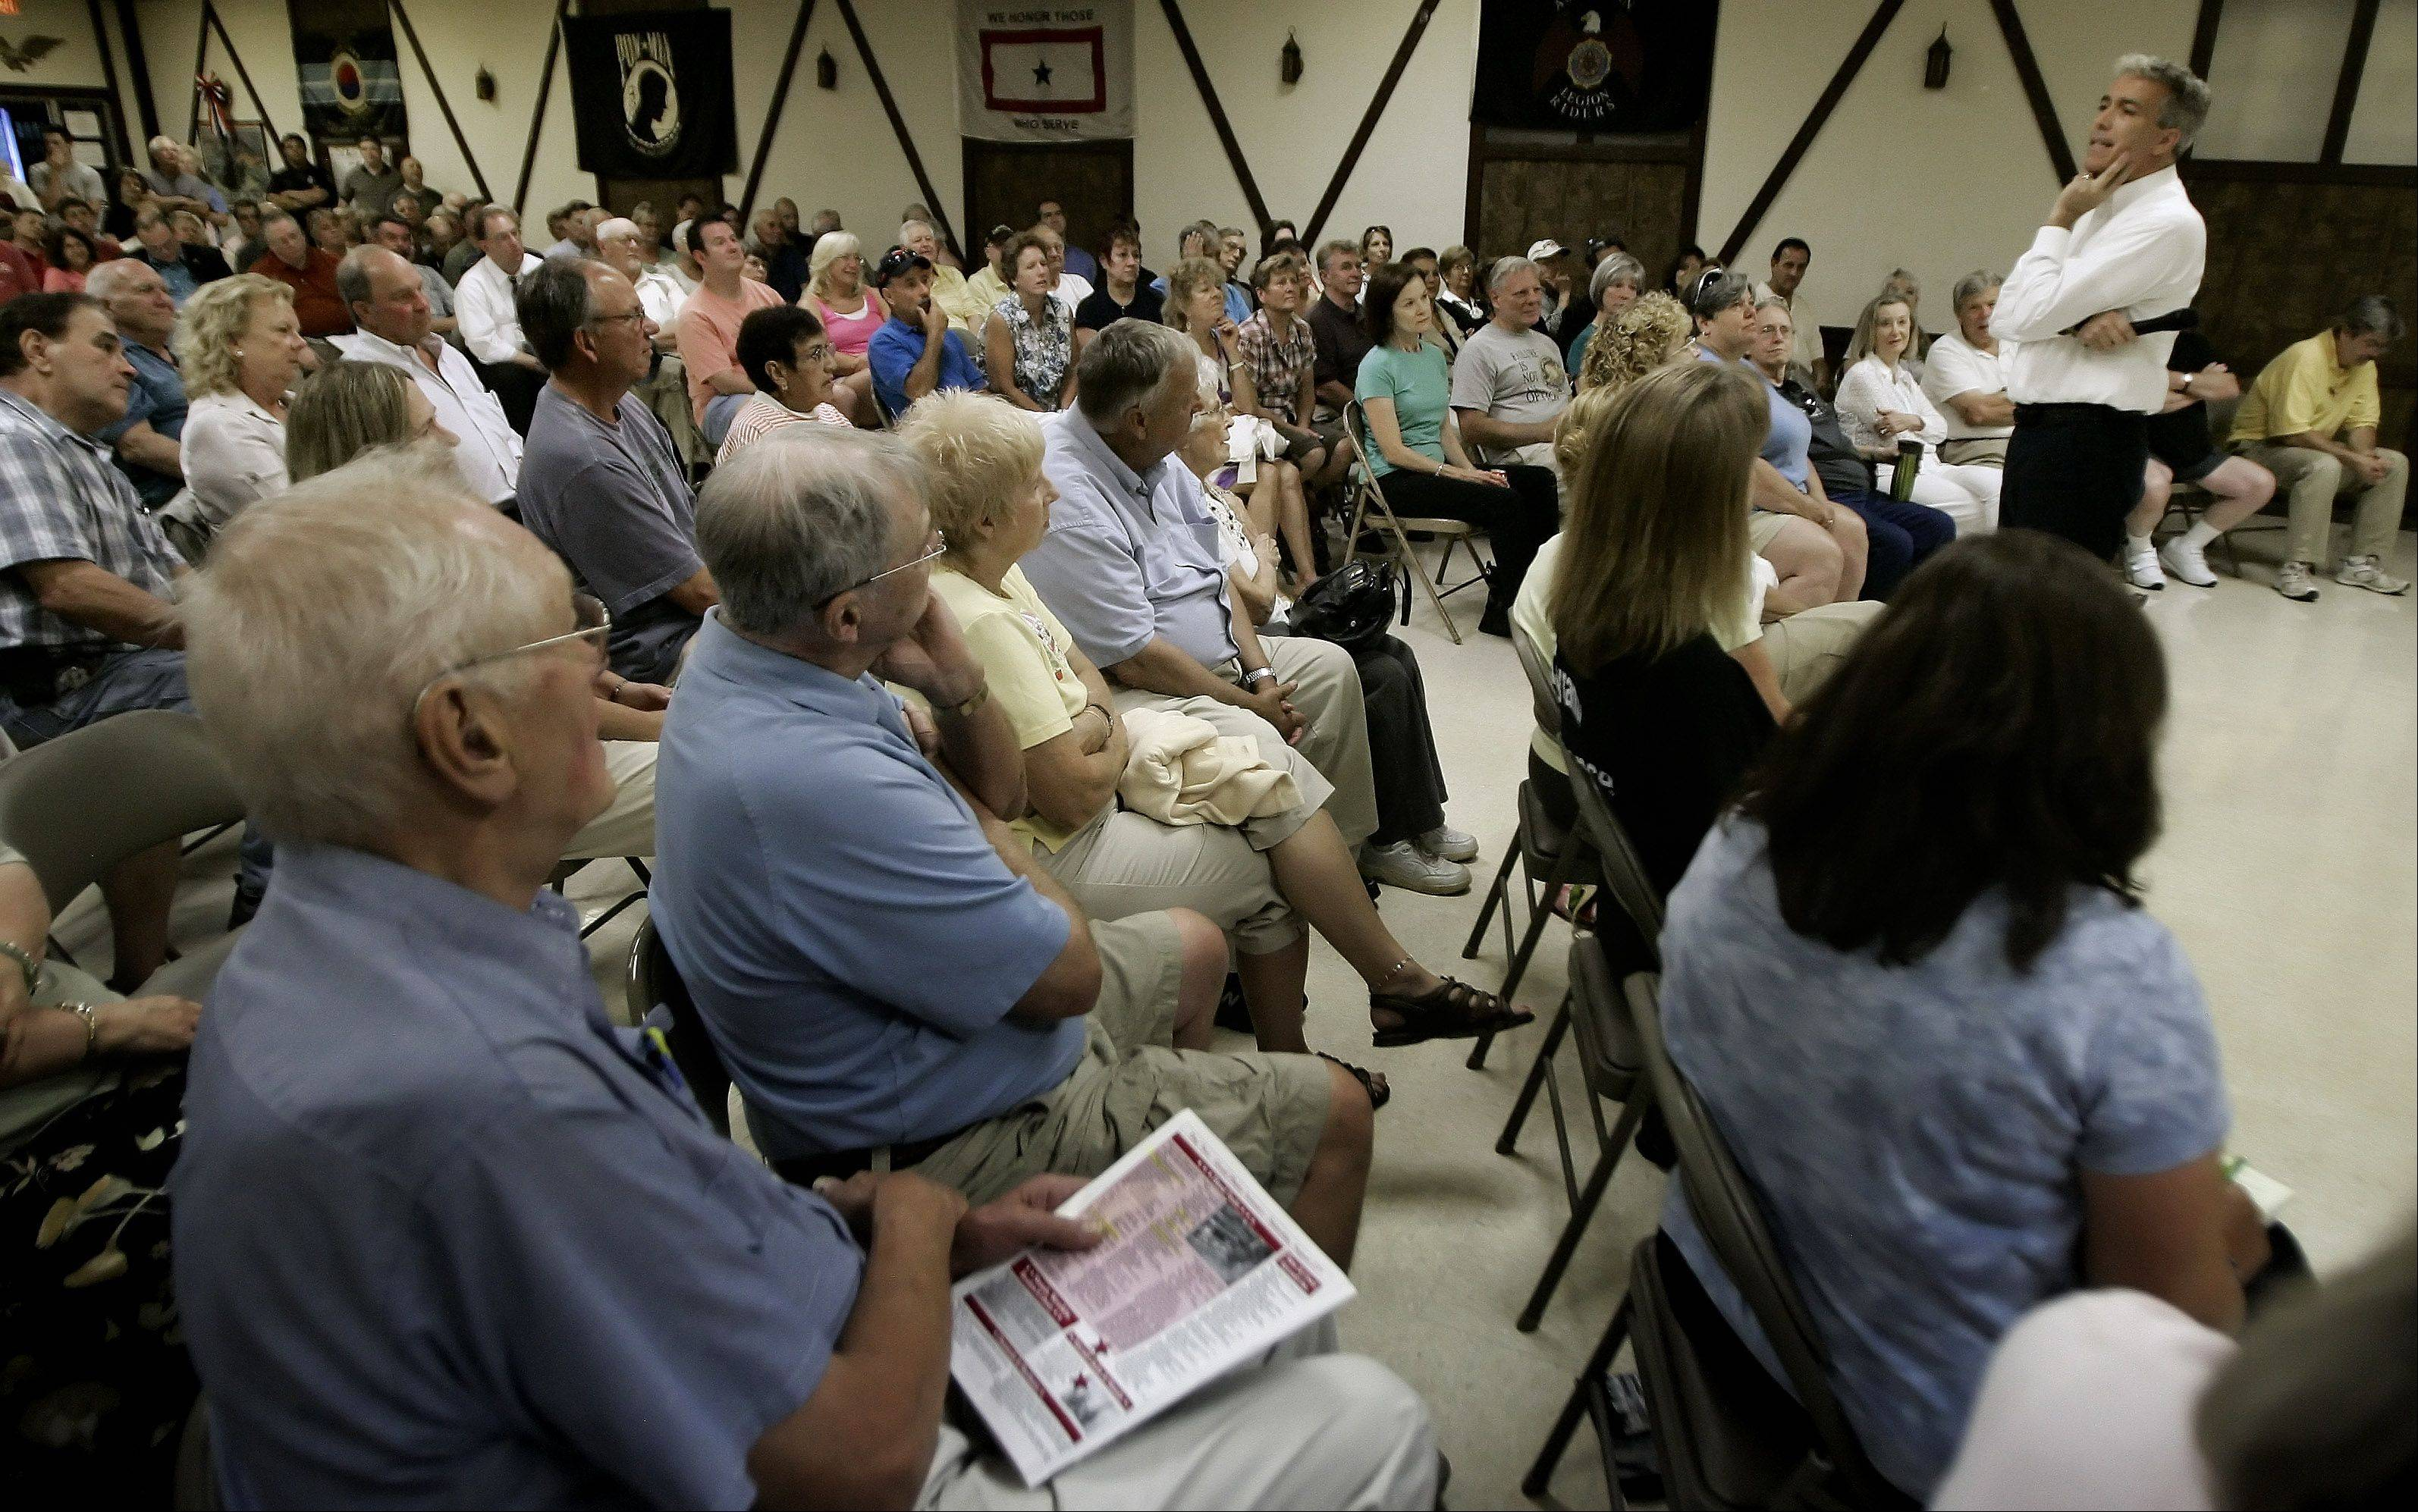 Congressman Joe Walsh answers questions during a recent town hall meeting at the American Legion Hall in Wauconda.